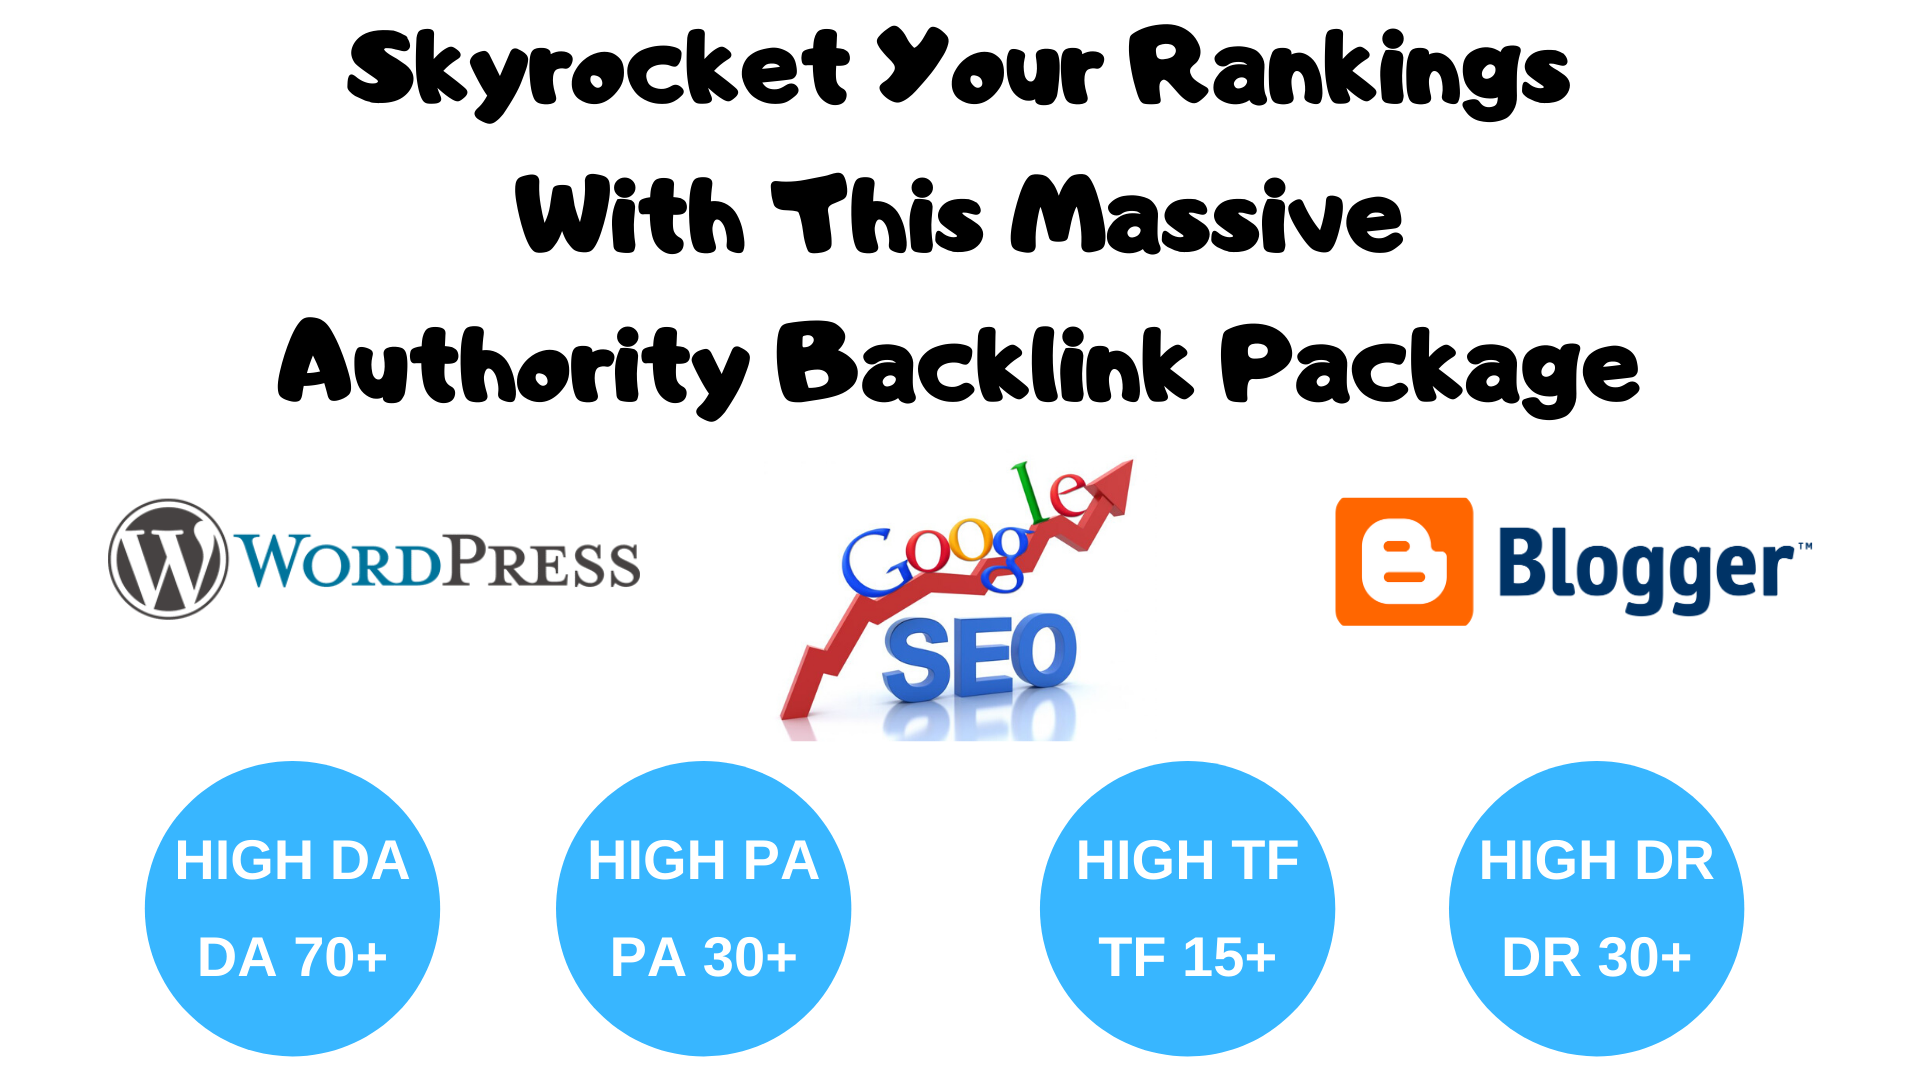 Skyrocket Your Rankings With This Massive Authority Backlink Package